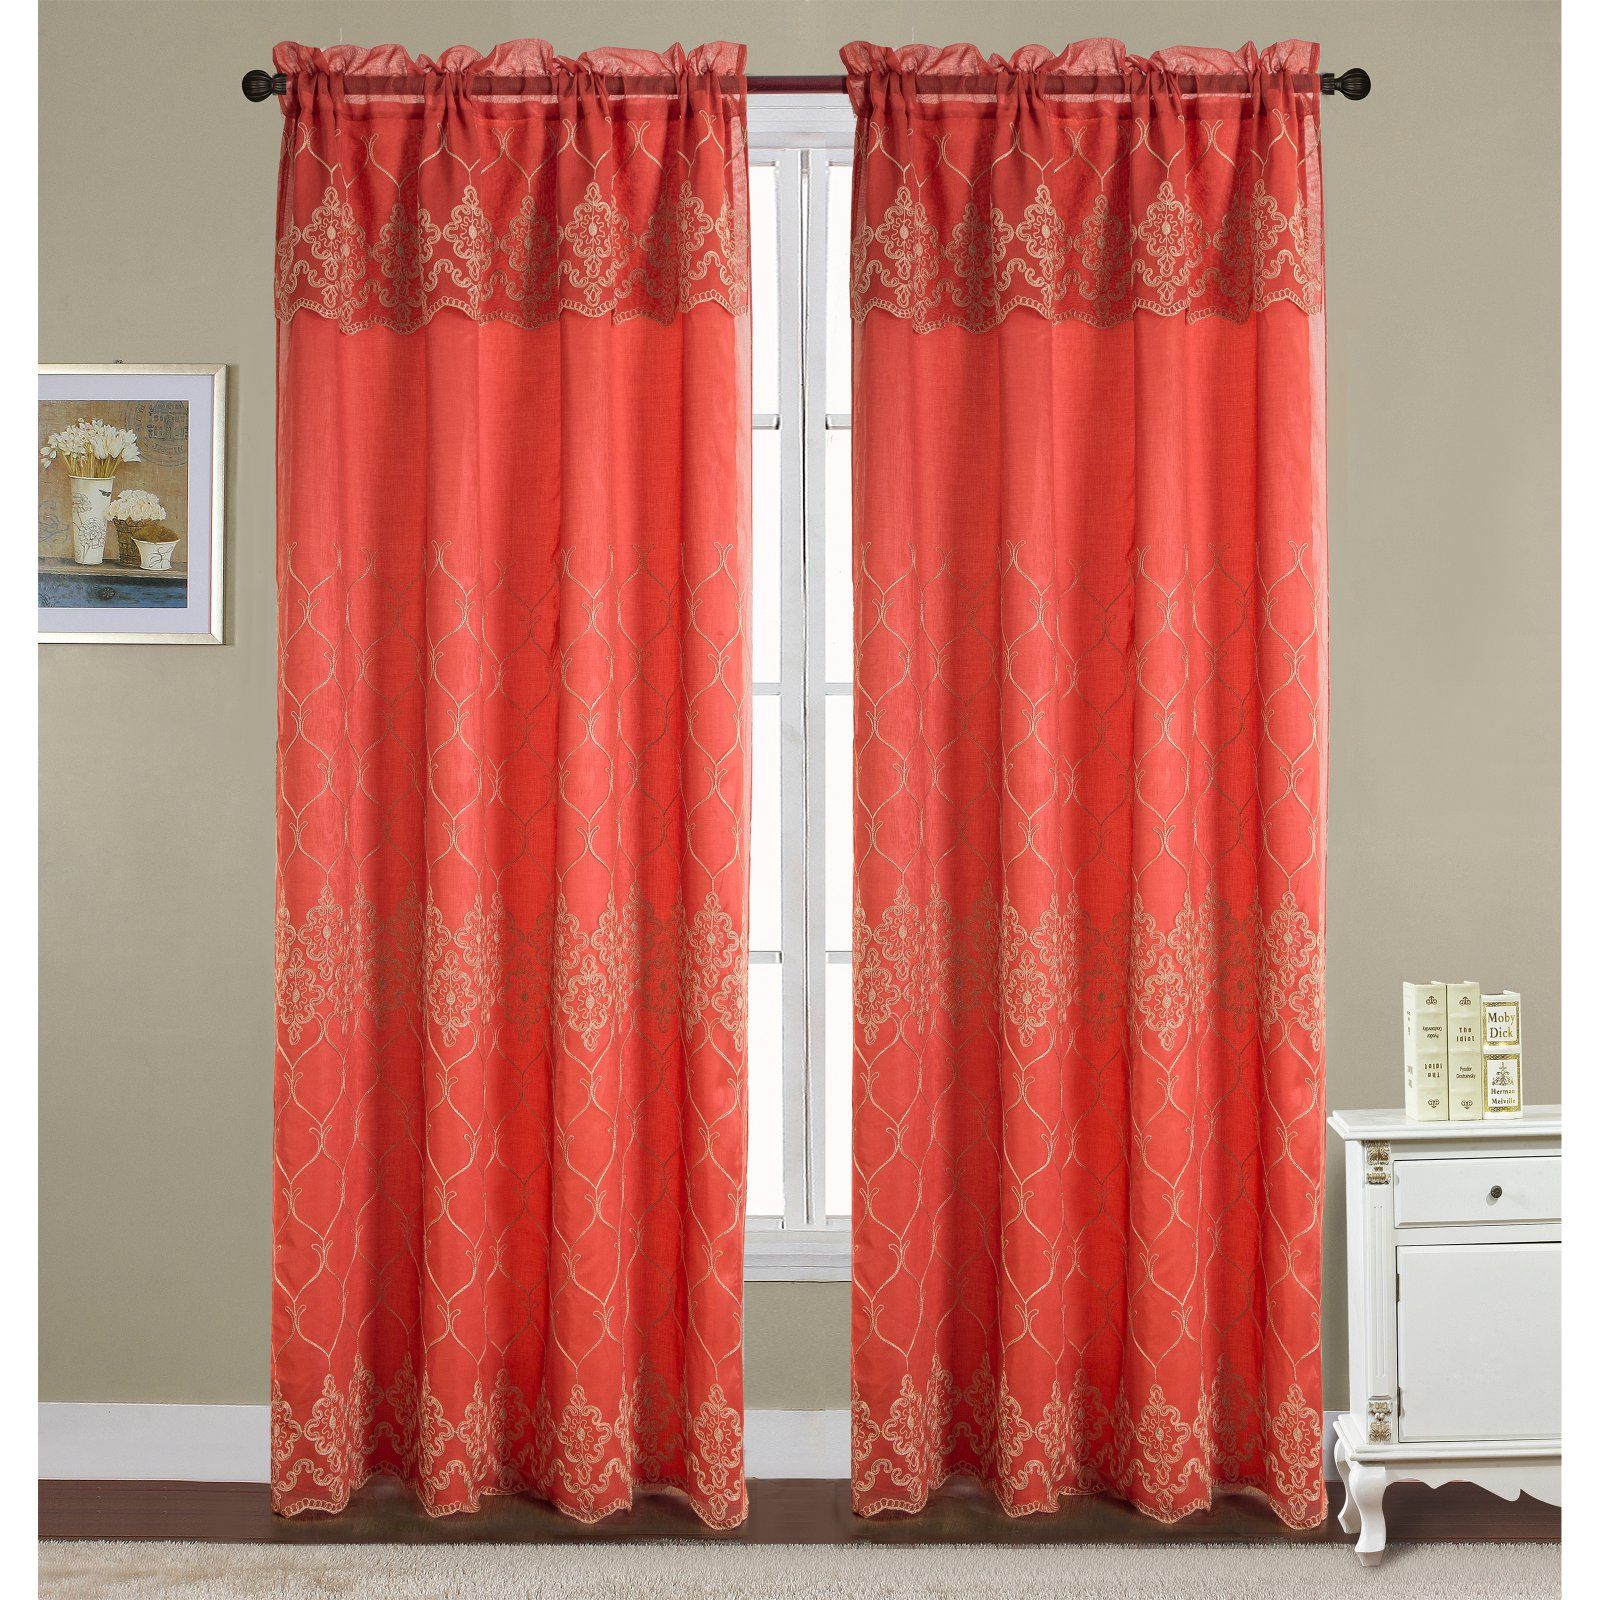 Rt Designers Collection Emmett Embroidered Double Rod Pocket Curtain Panel With Valance Terracotta Panel Curtains Rod Pocket Curtain Panels Curtains